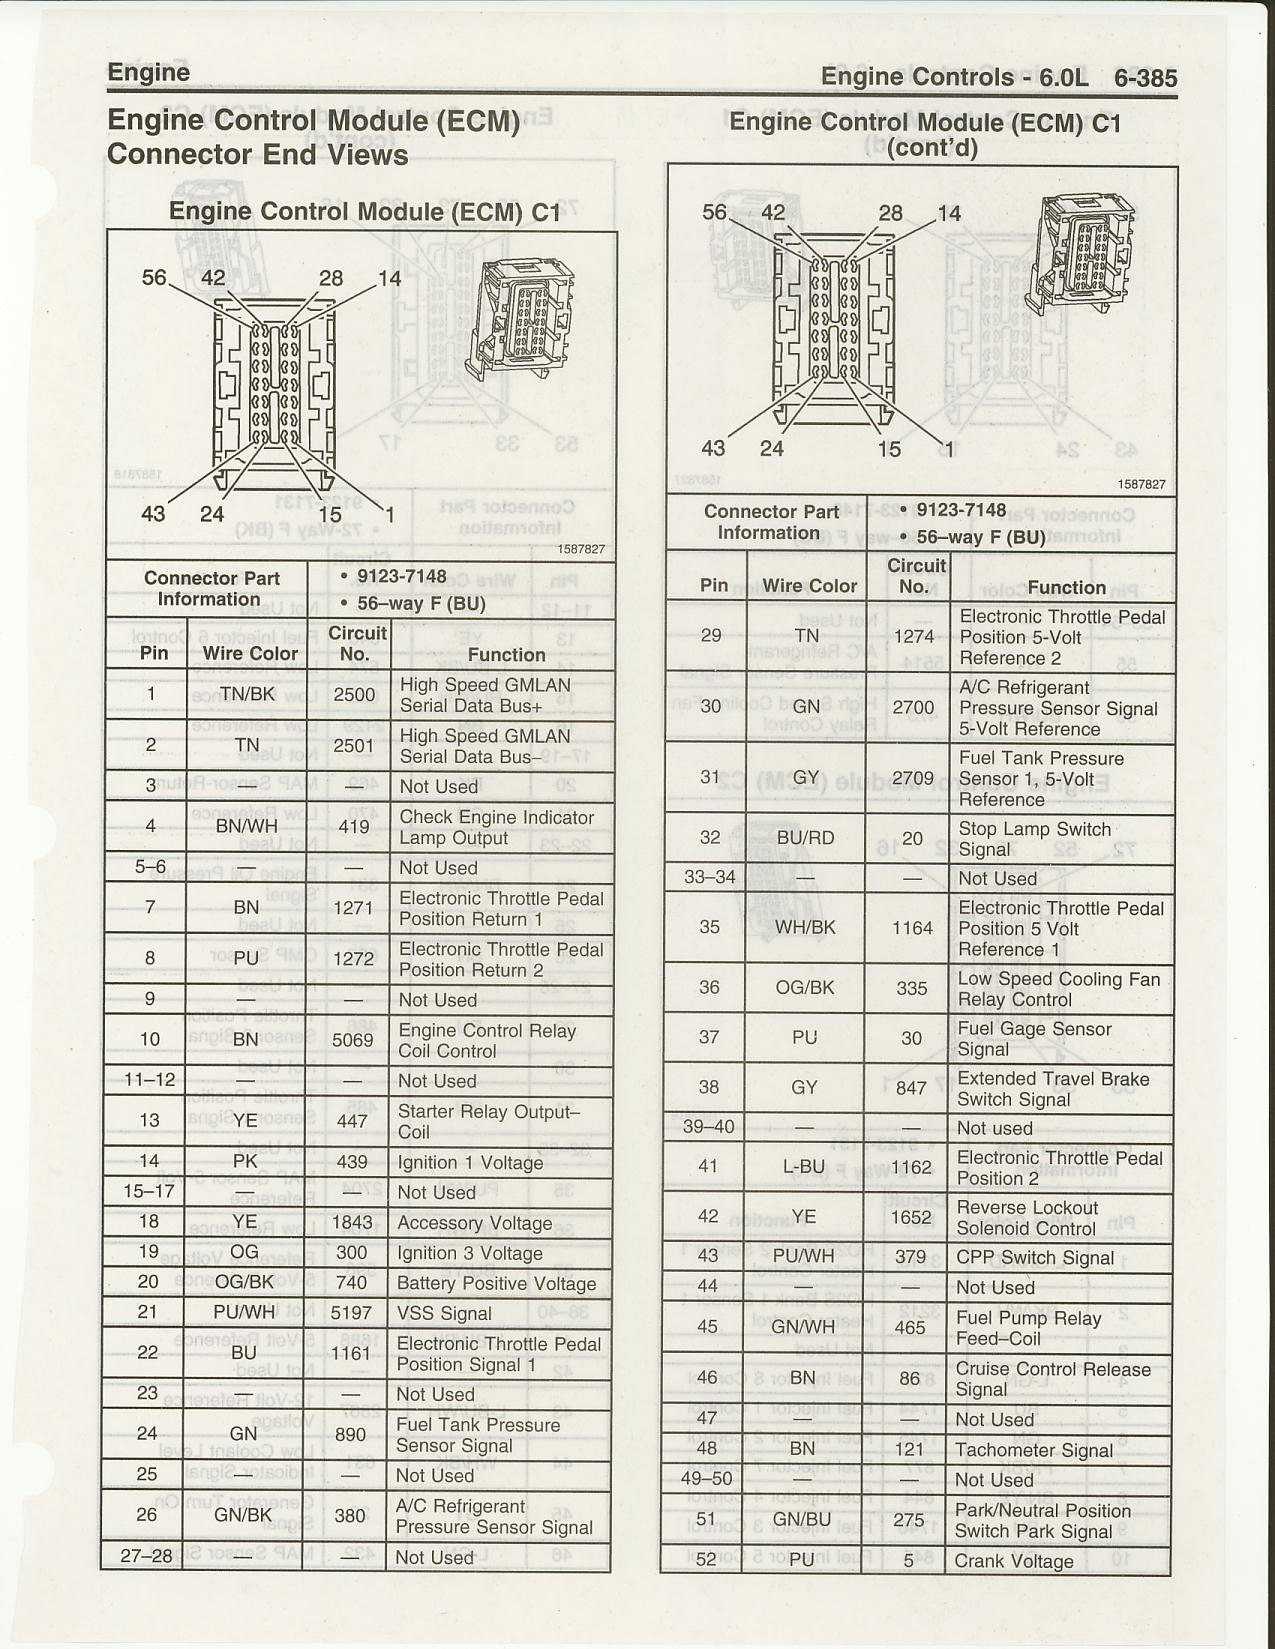 Wiring Diagram For 2005 Chevy Silverado 3500 Libraries Pinouts And Diagrams Page 4 Ls1tech Camaro Firebirdwiring